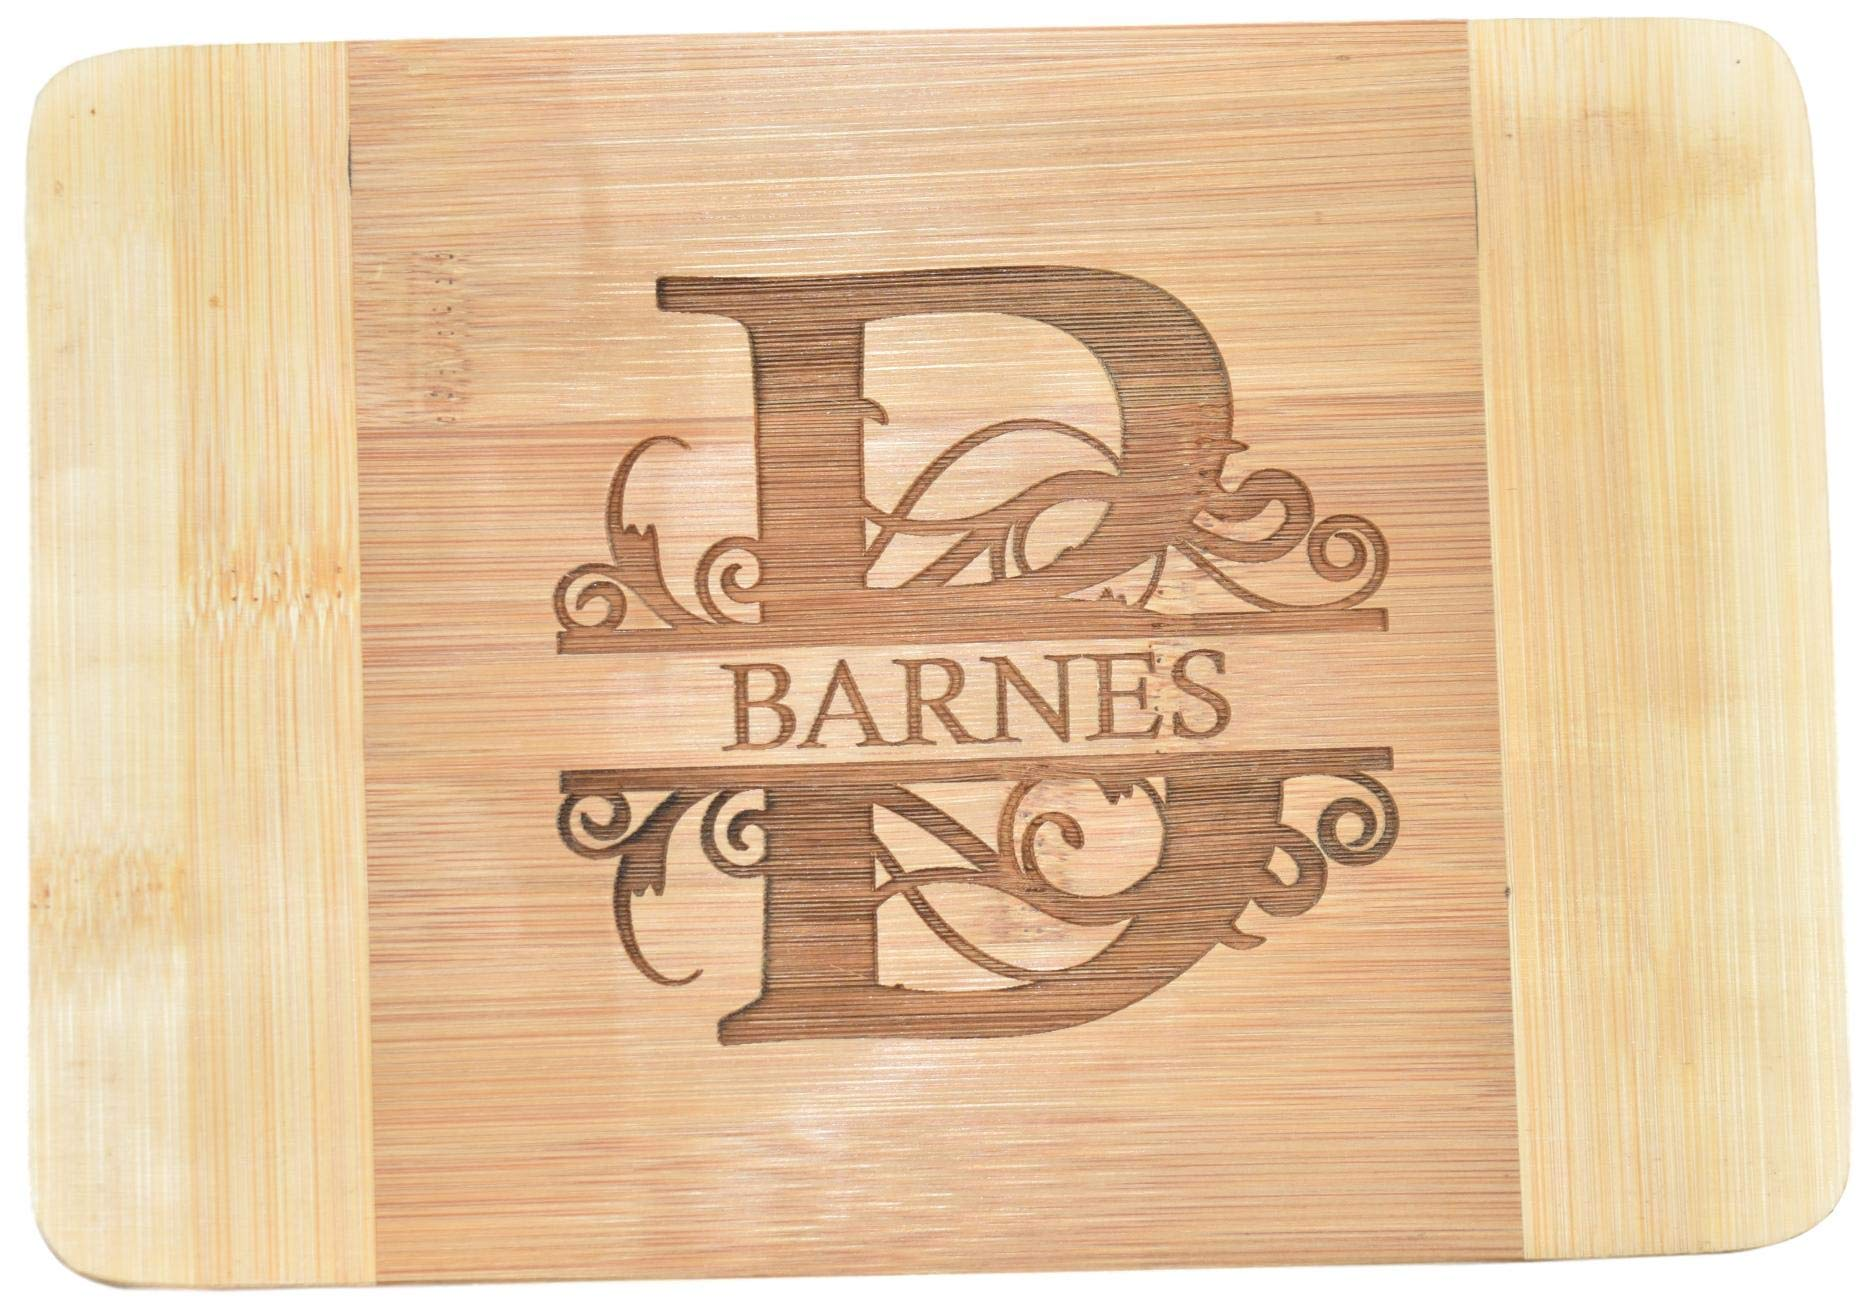 Personalized/Custom Engraved Bamboo Cutting/Cheese Board - 9''x6.25''x0.37'' (SMALL)